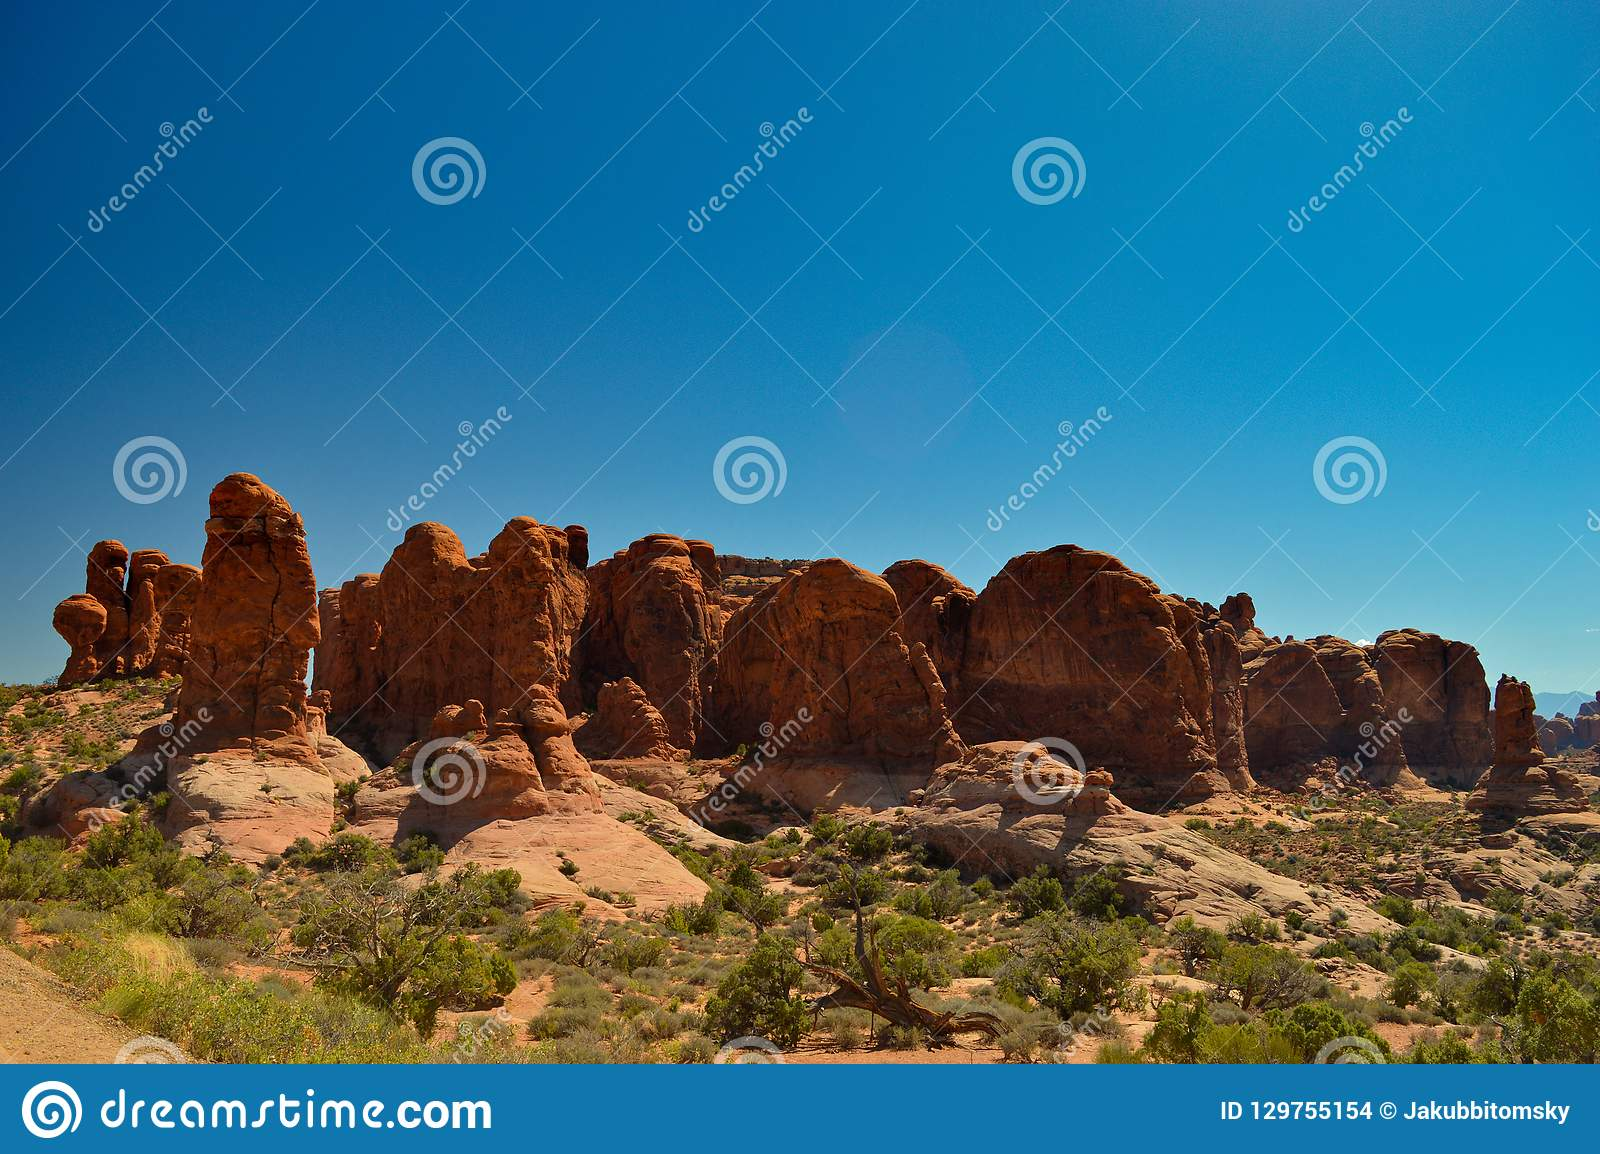 Nature in the Arches national park